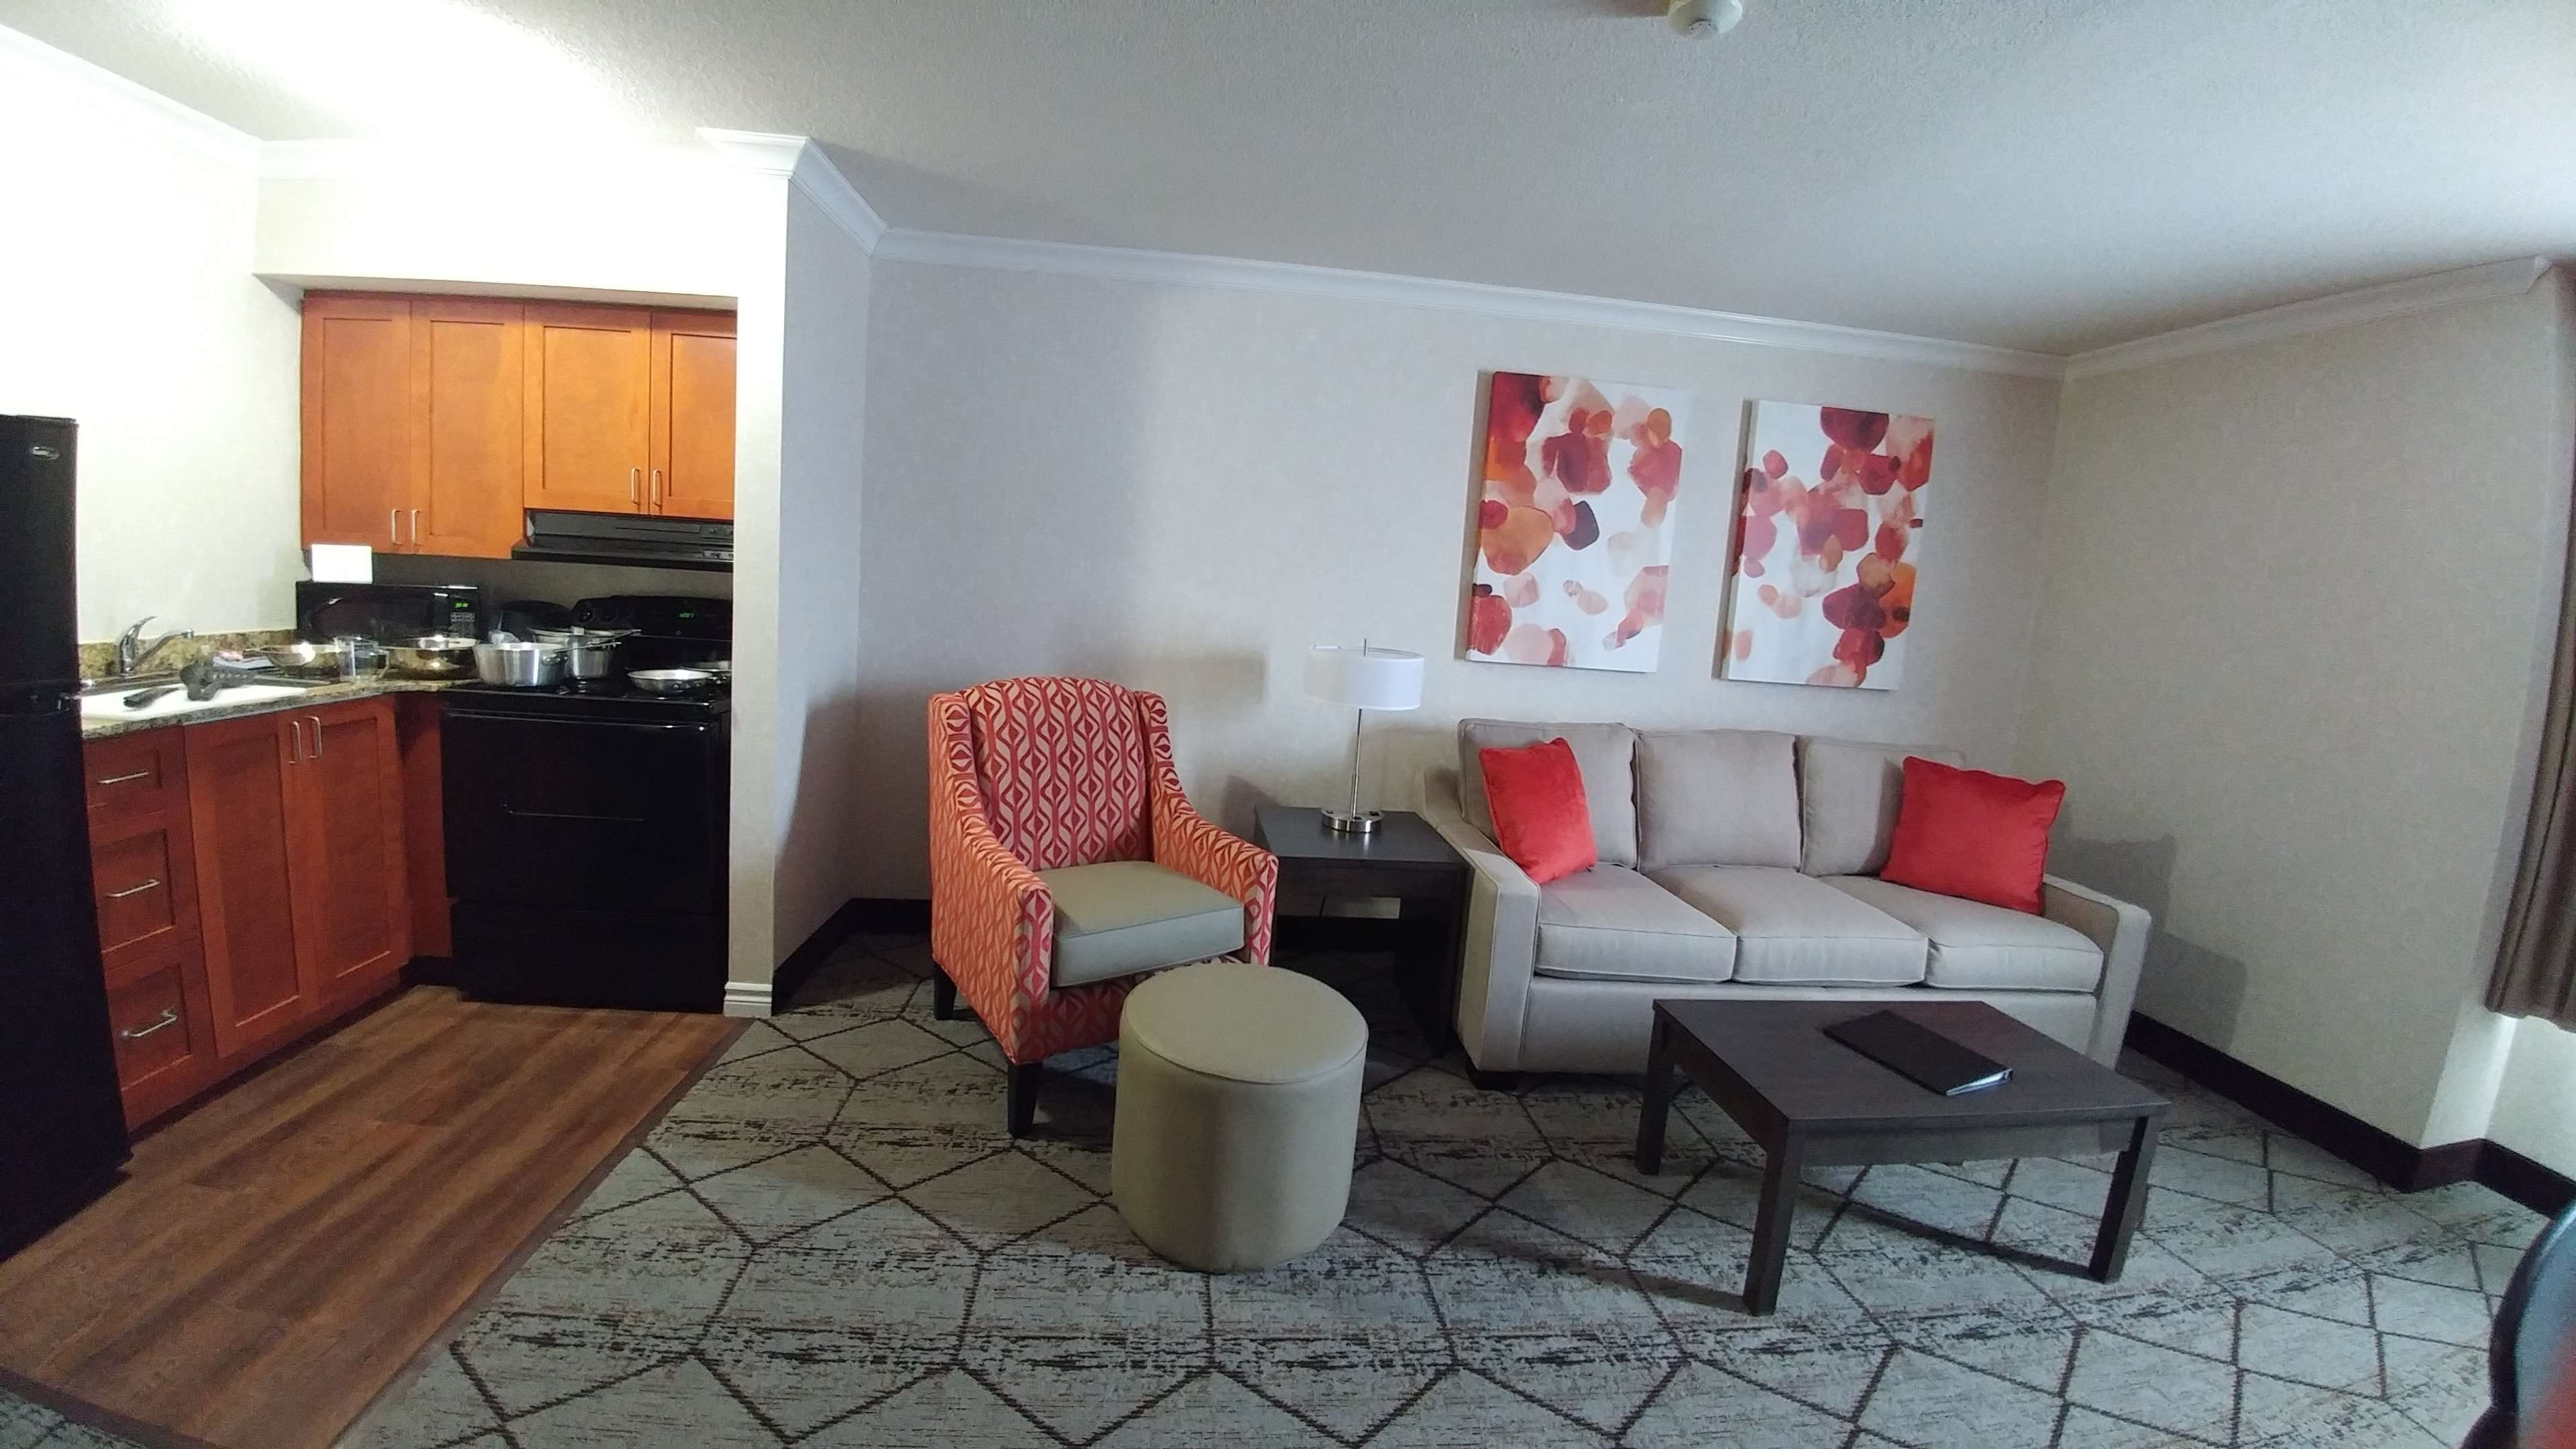 Best Western Plus Rose City Suites in Welland: Living room & kitchen area